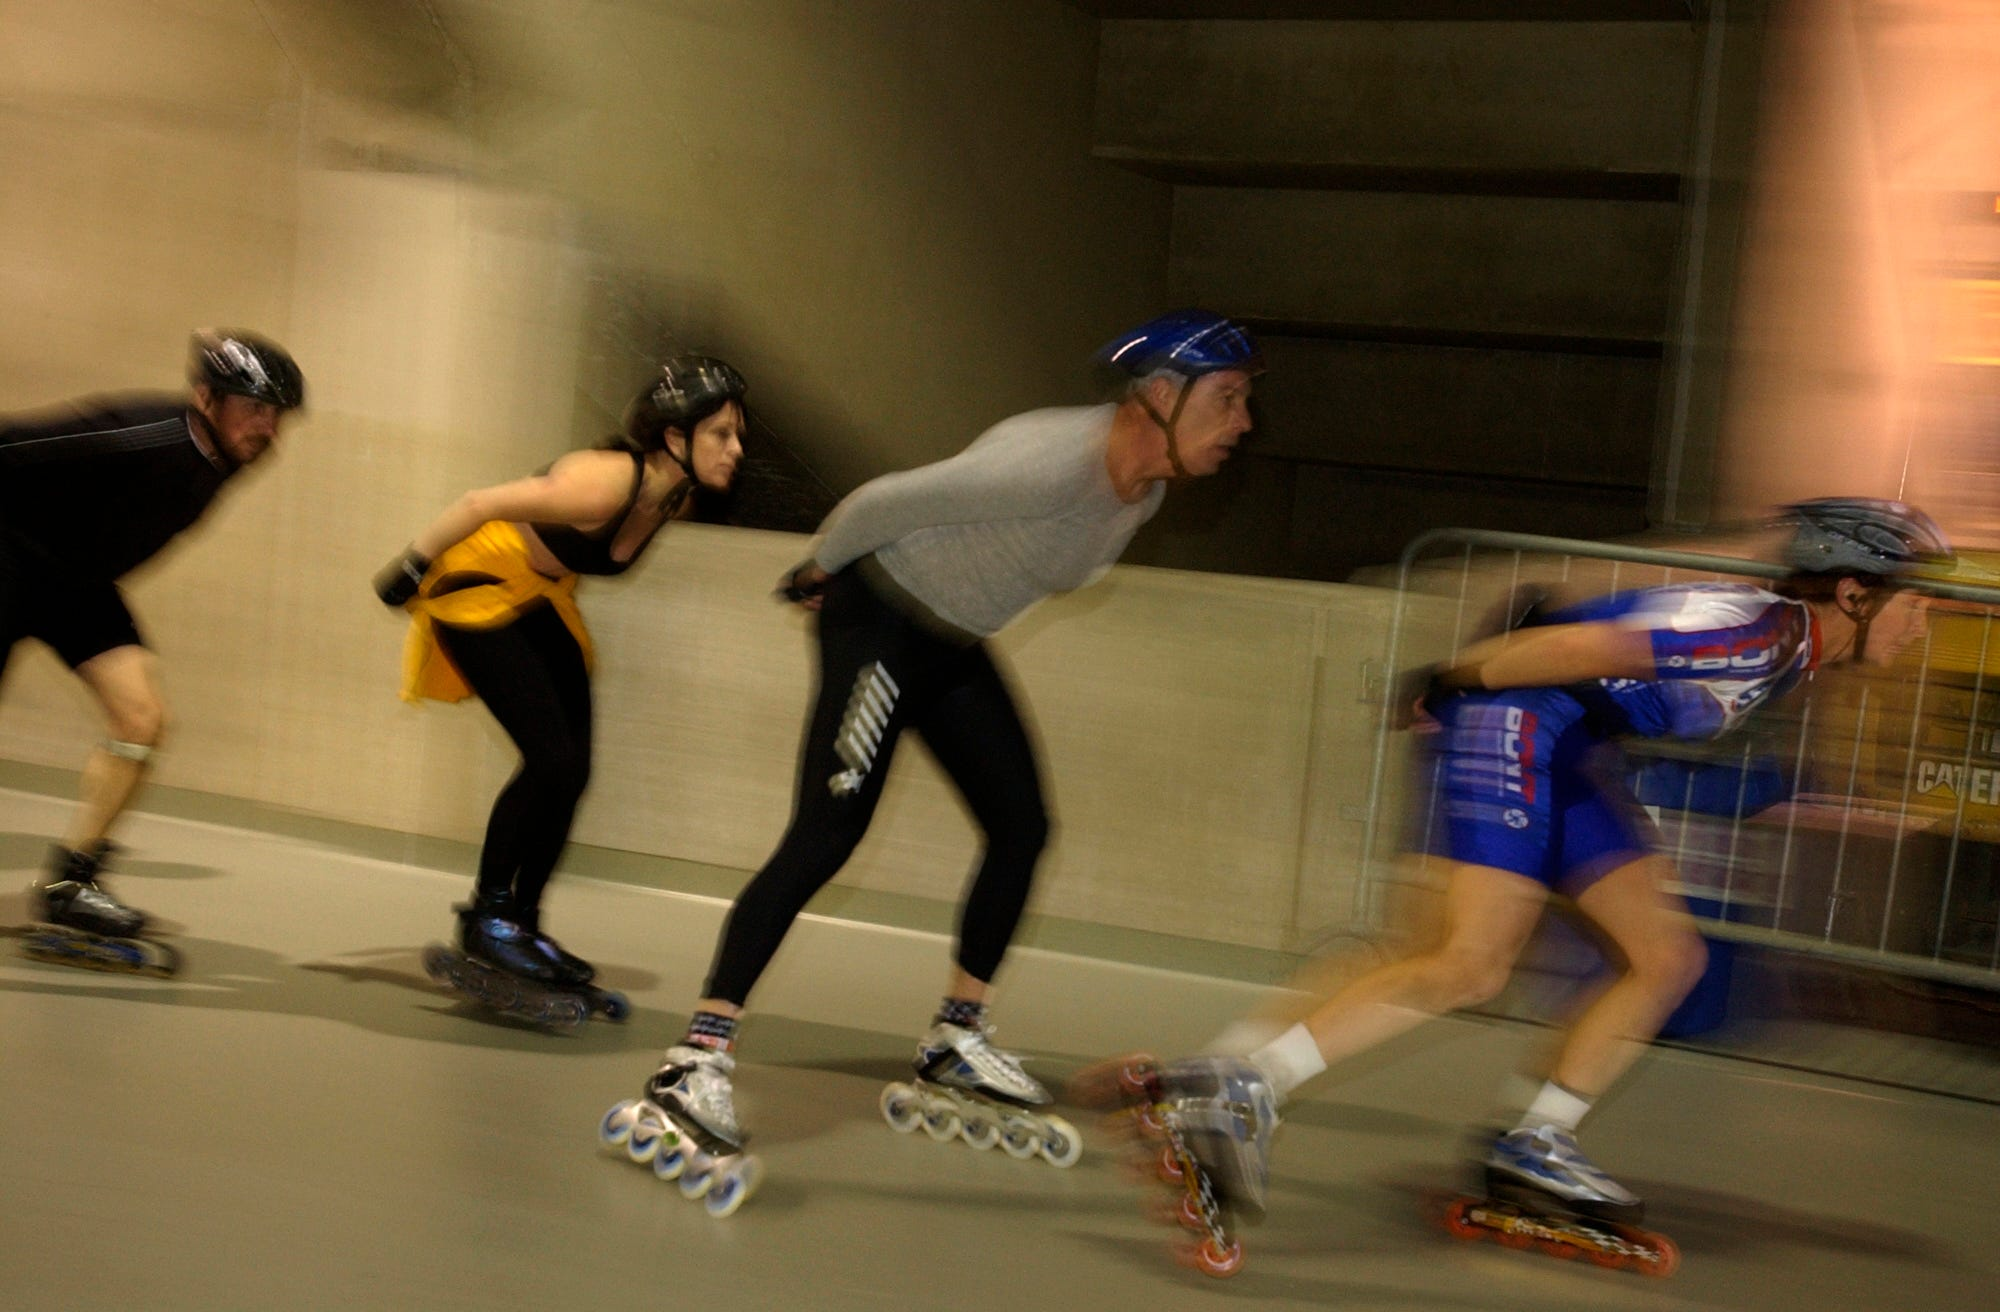 A line of speed skaters skirts the inside wall during